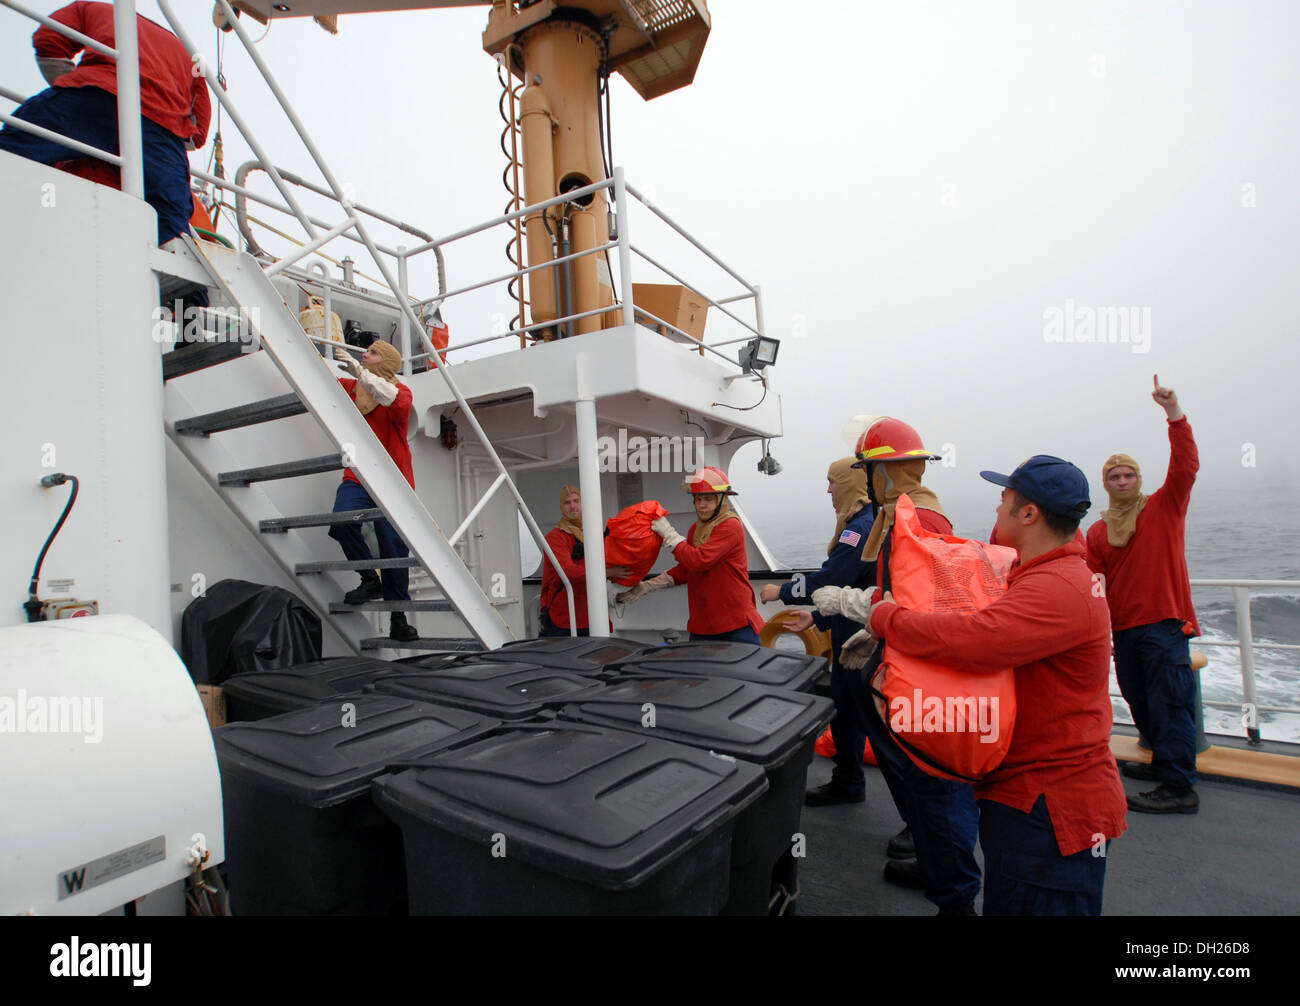 Members of USCG Cutter Hollyhock's crew work together to distribute survival suits during an abandon ship drill, Stock Photo